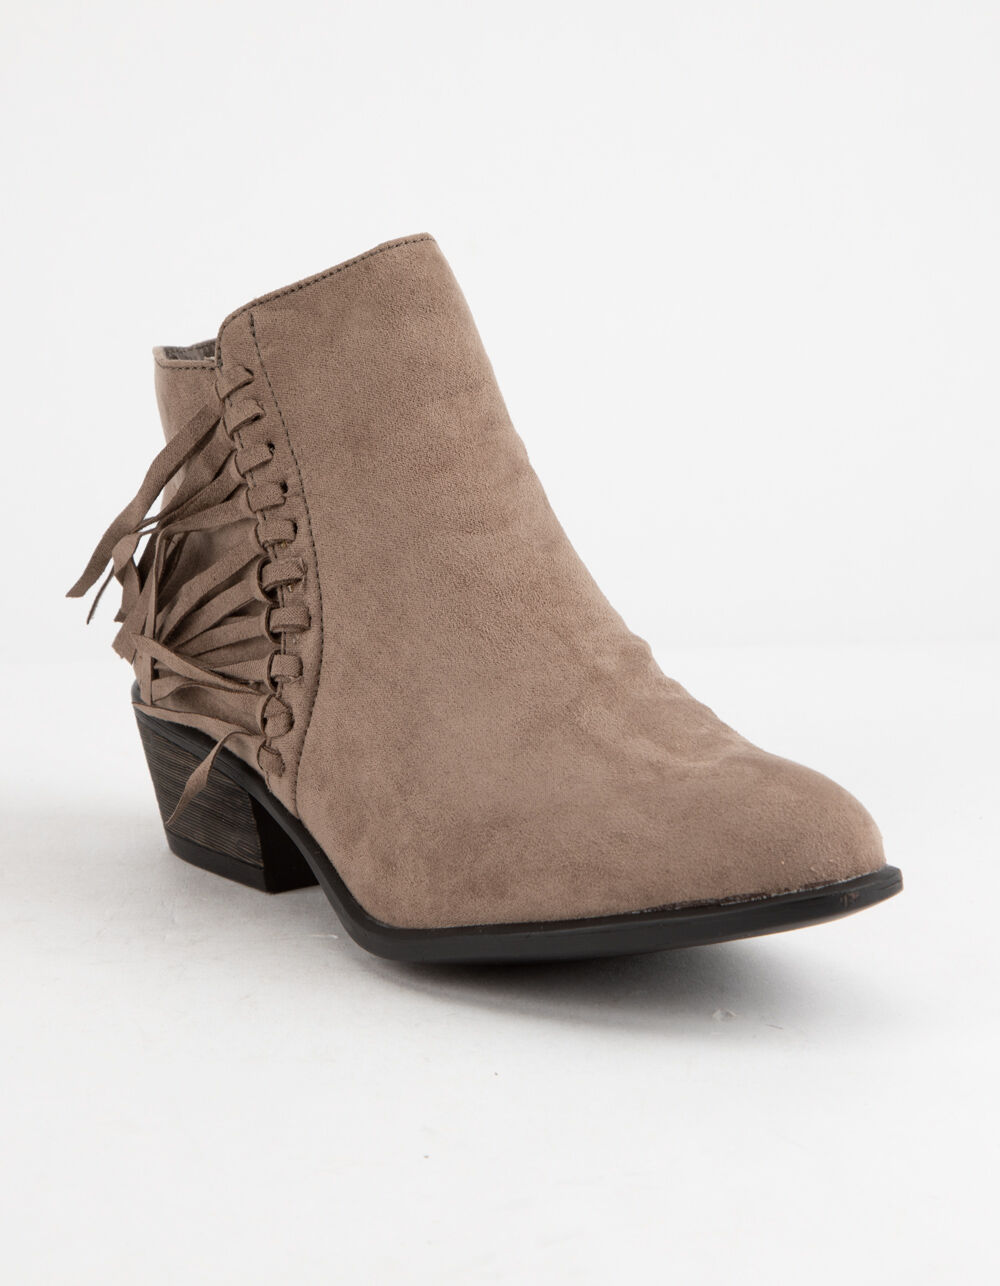 Image of BAMBOO SADIE TAUPE BOOTIES